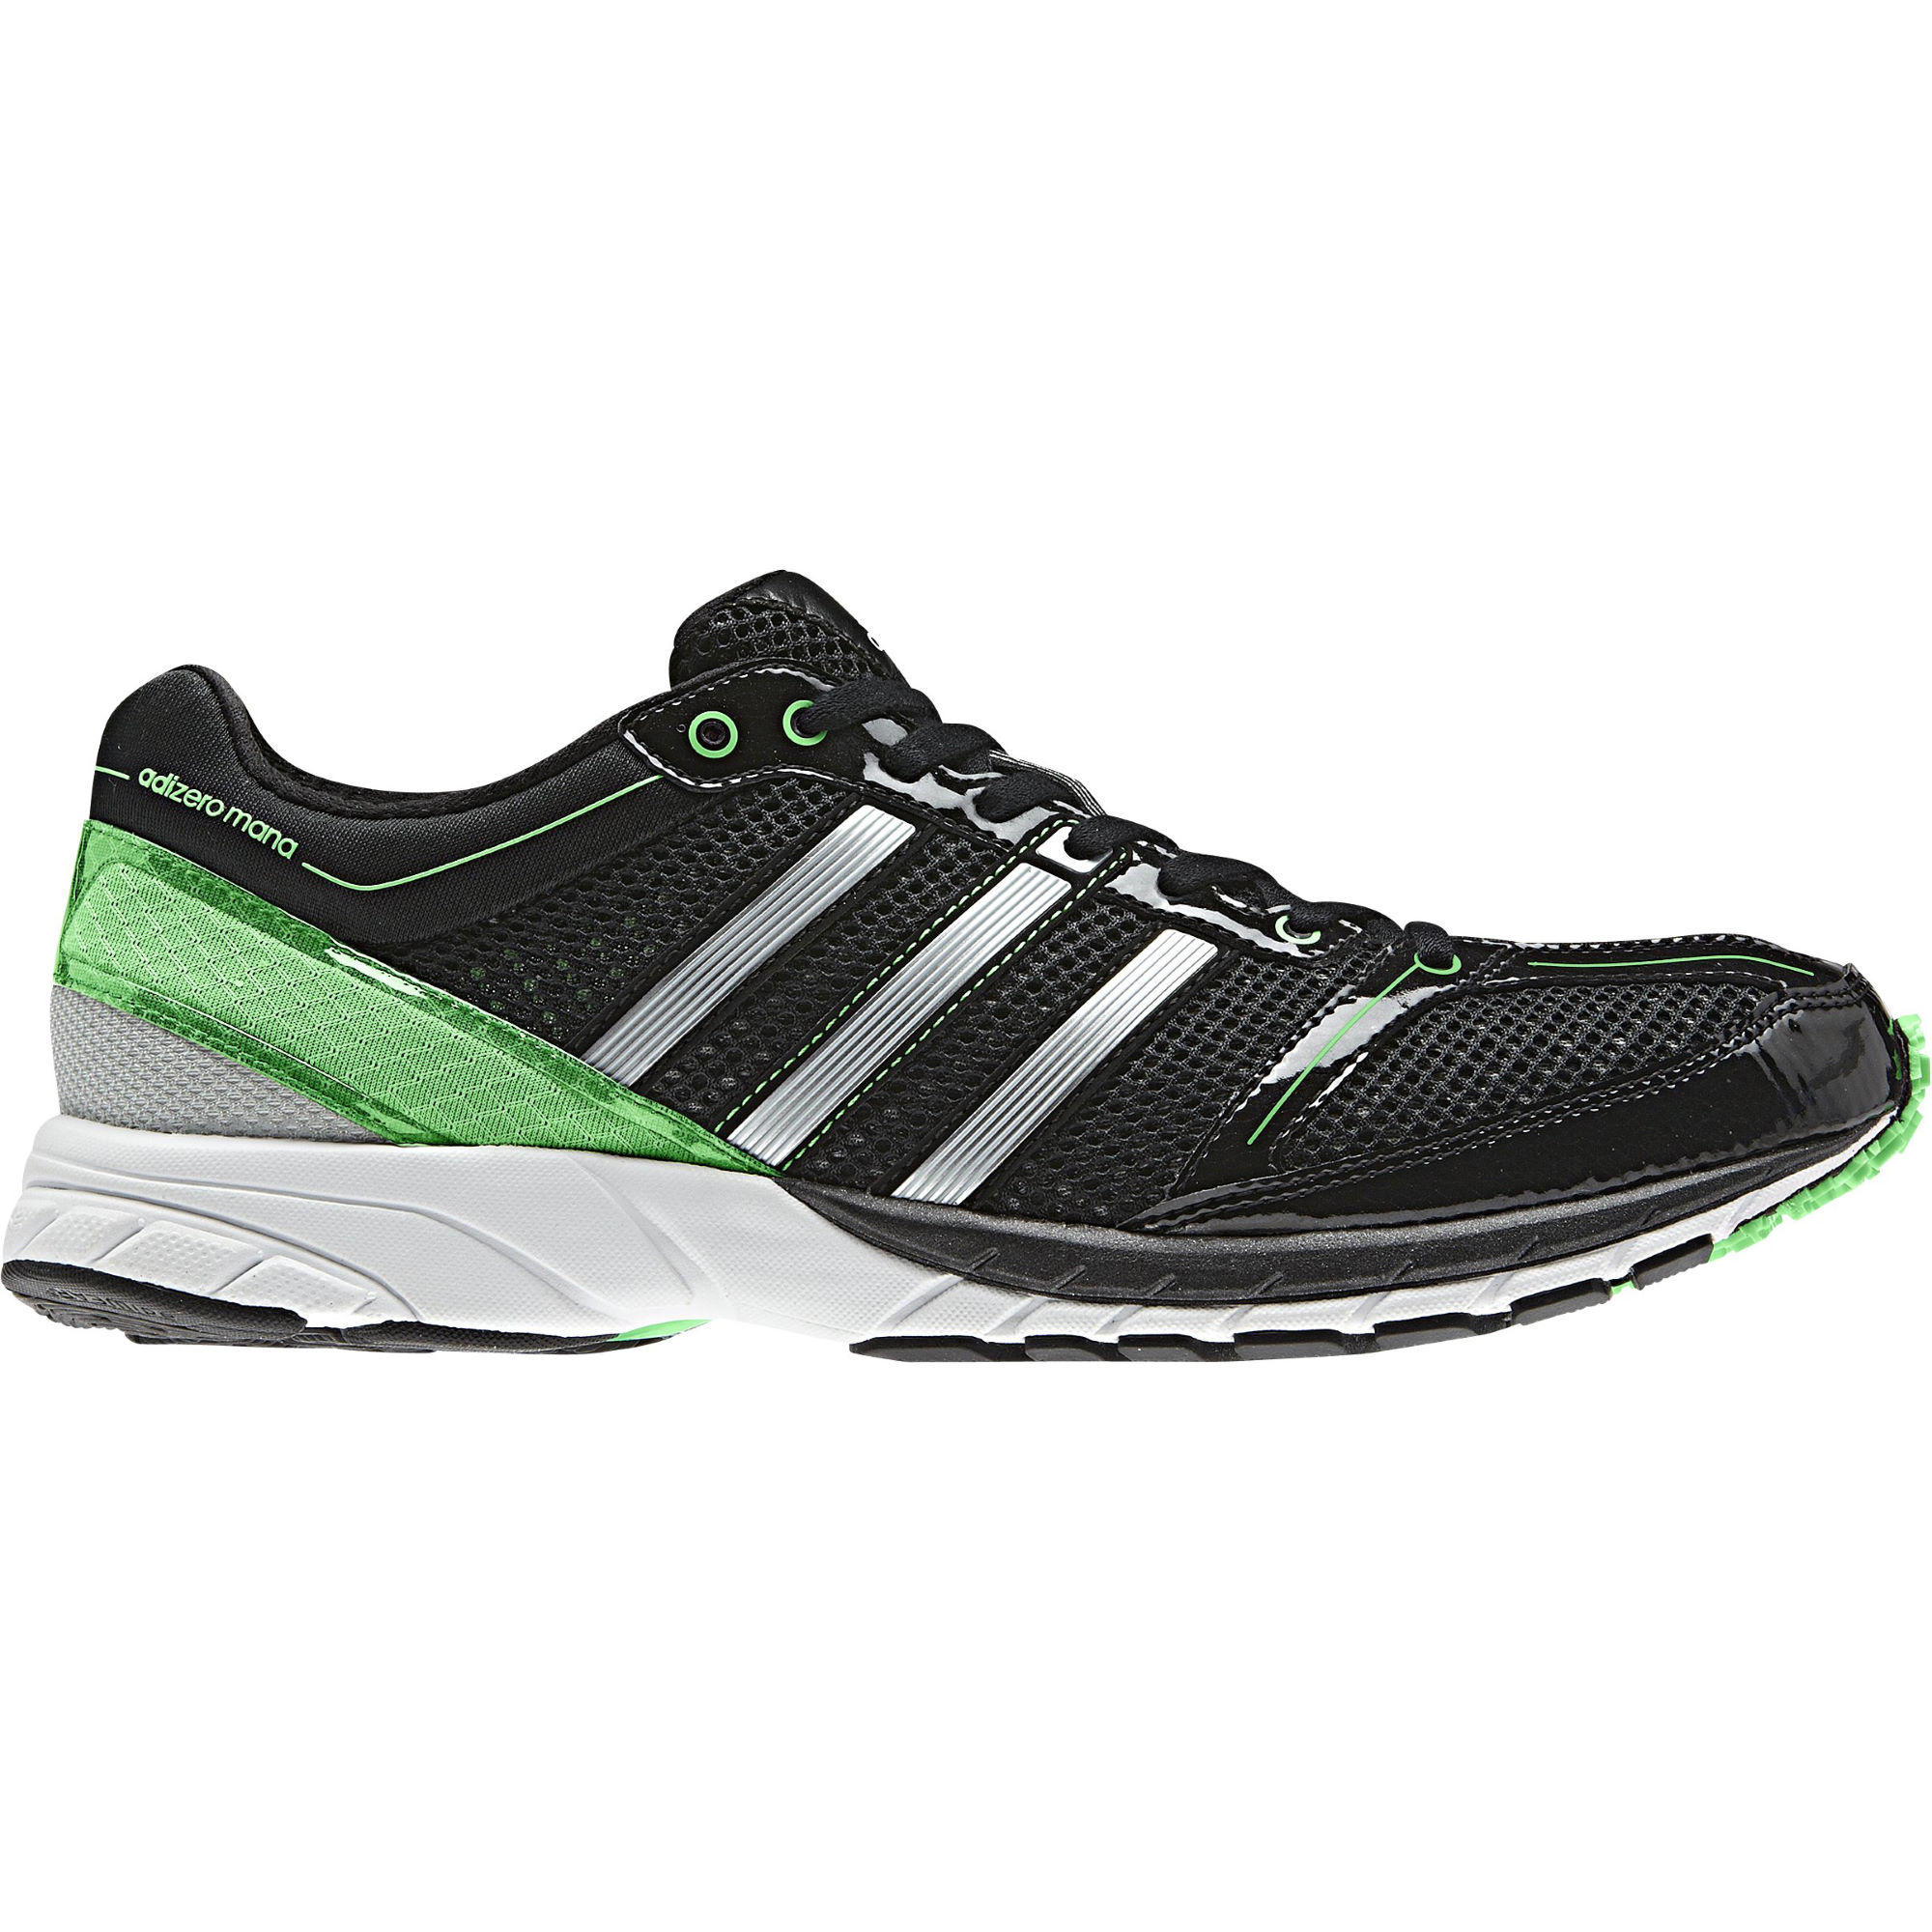 Similar Looking Running Shoes In Adidas